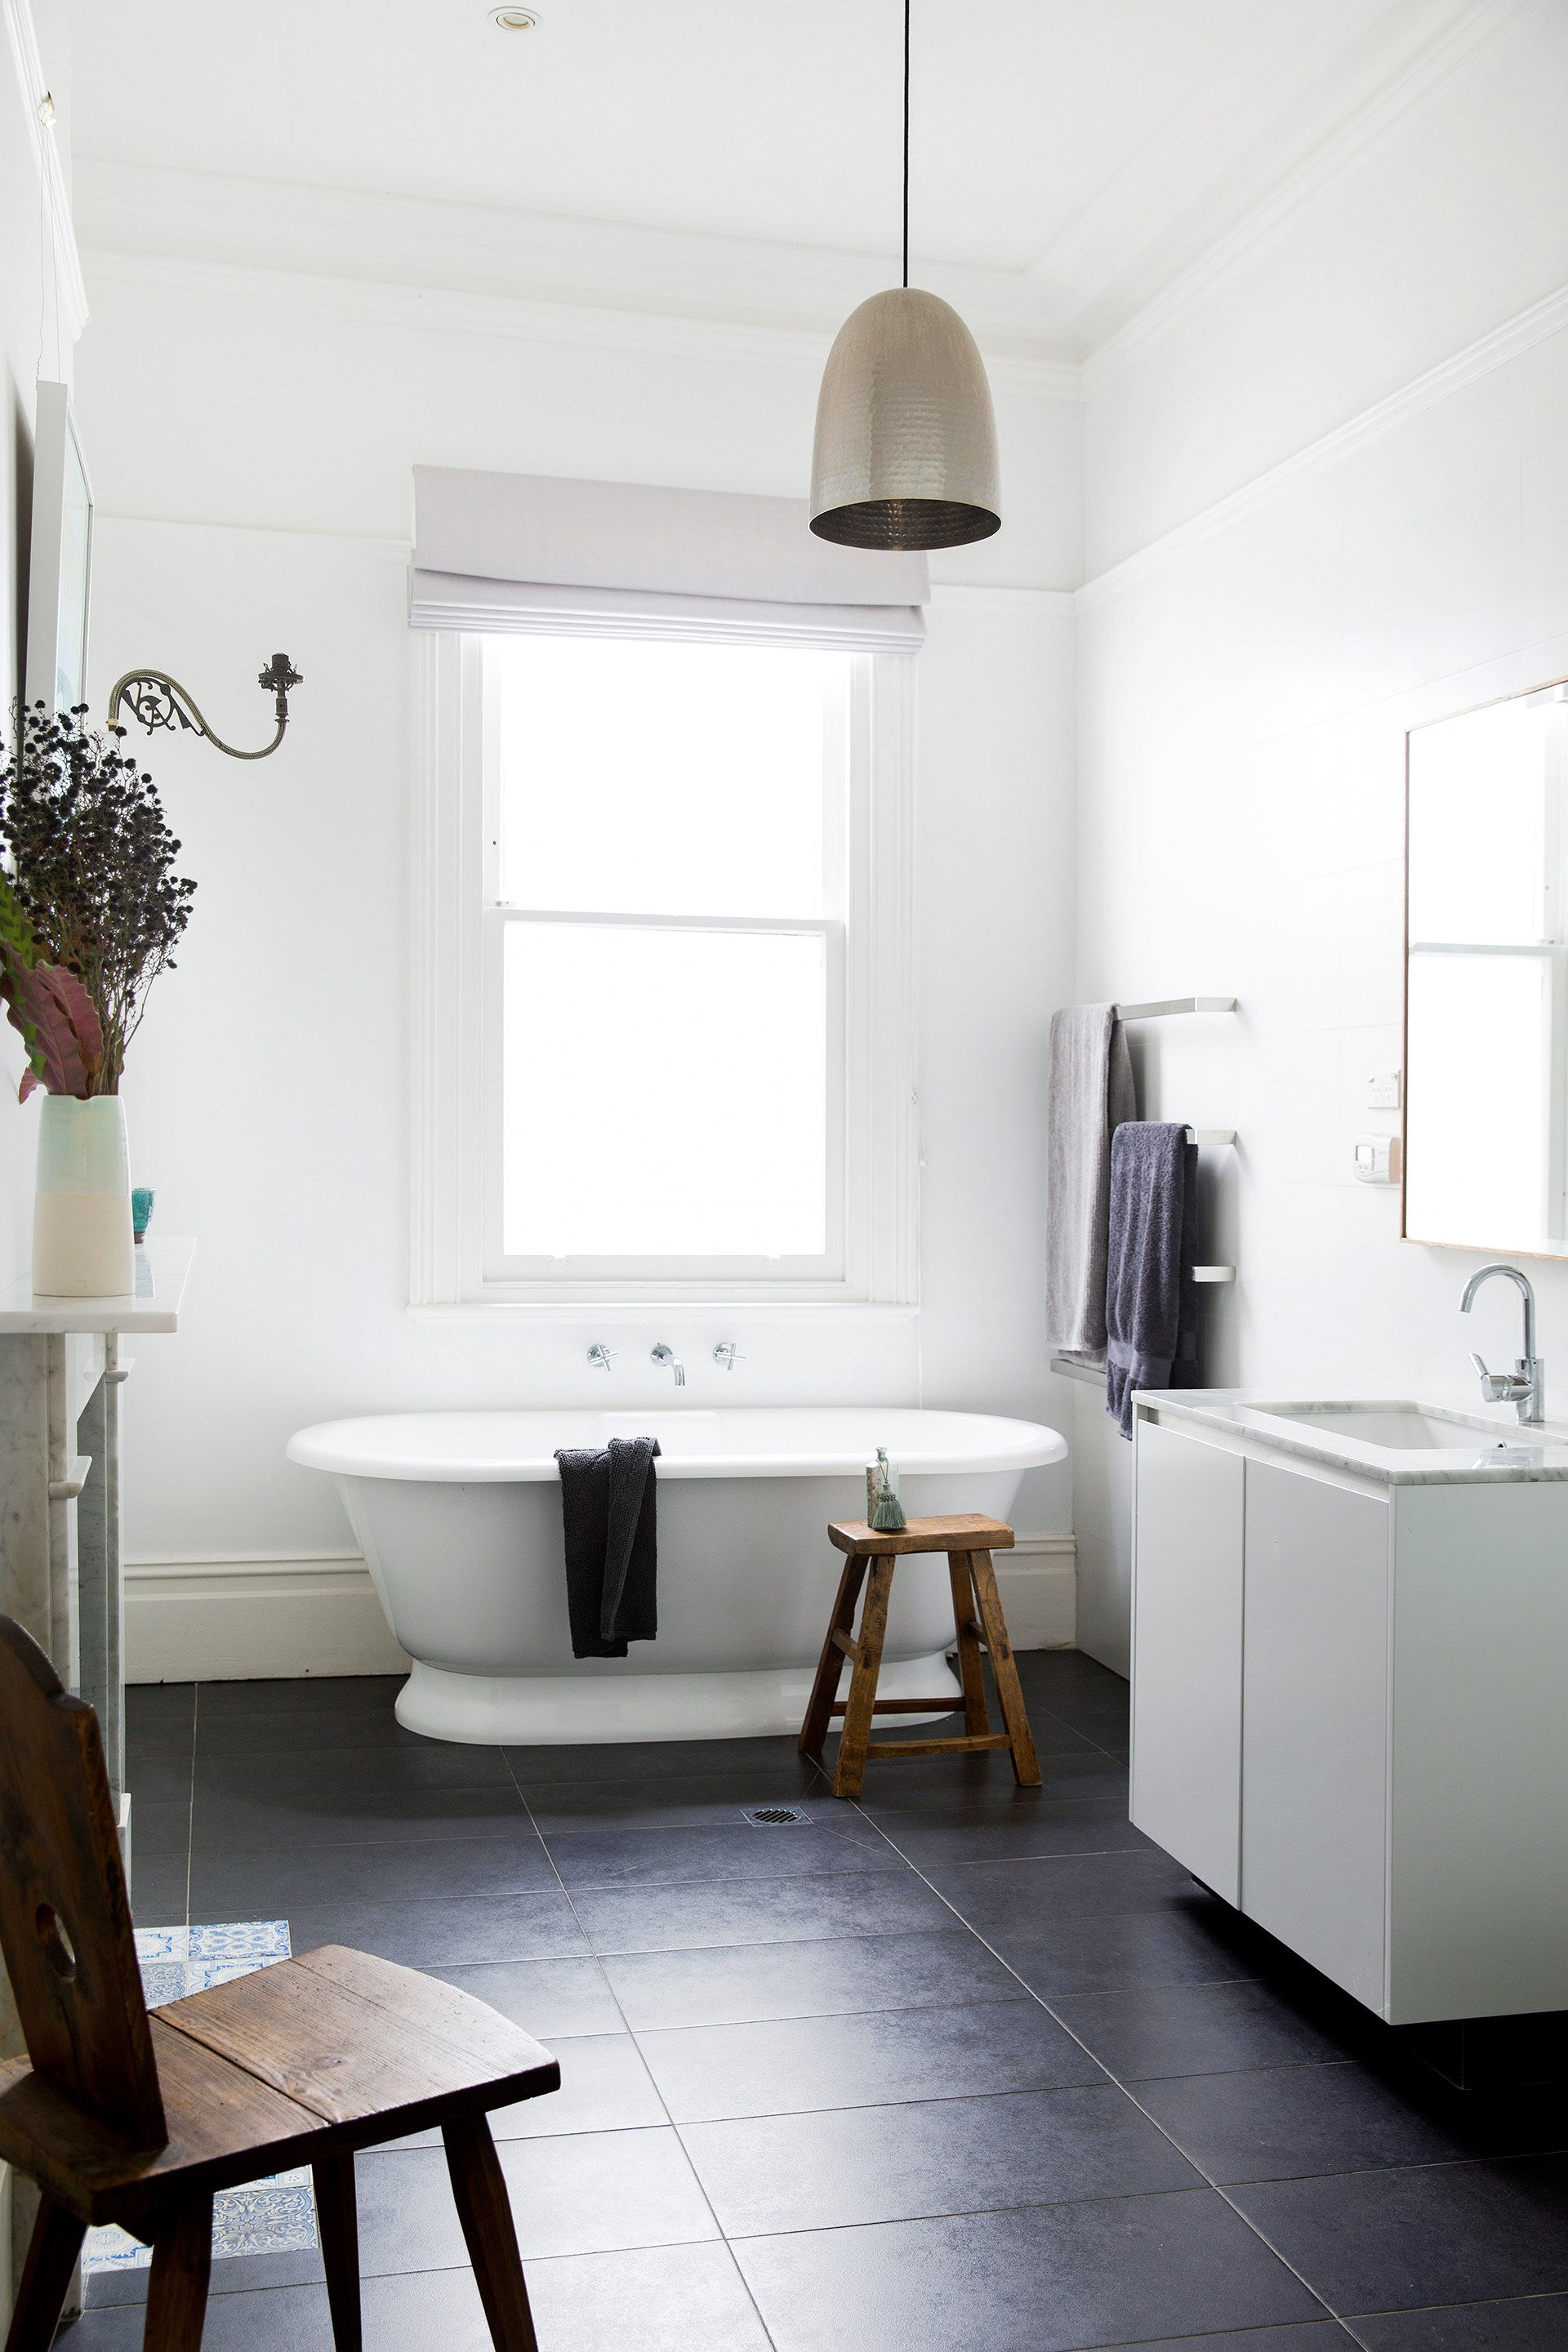 """This old-world bathroom was once a bedroom in this [original 19th century cottage](http://www.homestolove.com.au/gallery-refreshing-extension-for-old-sydney-cottage-2755